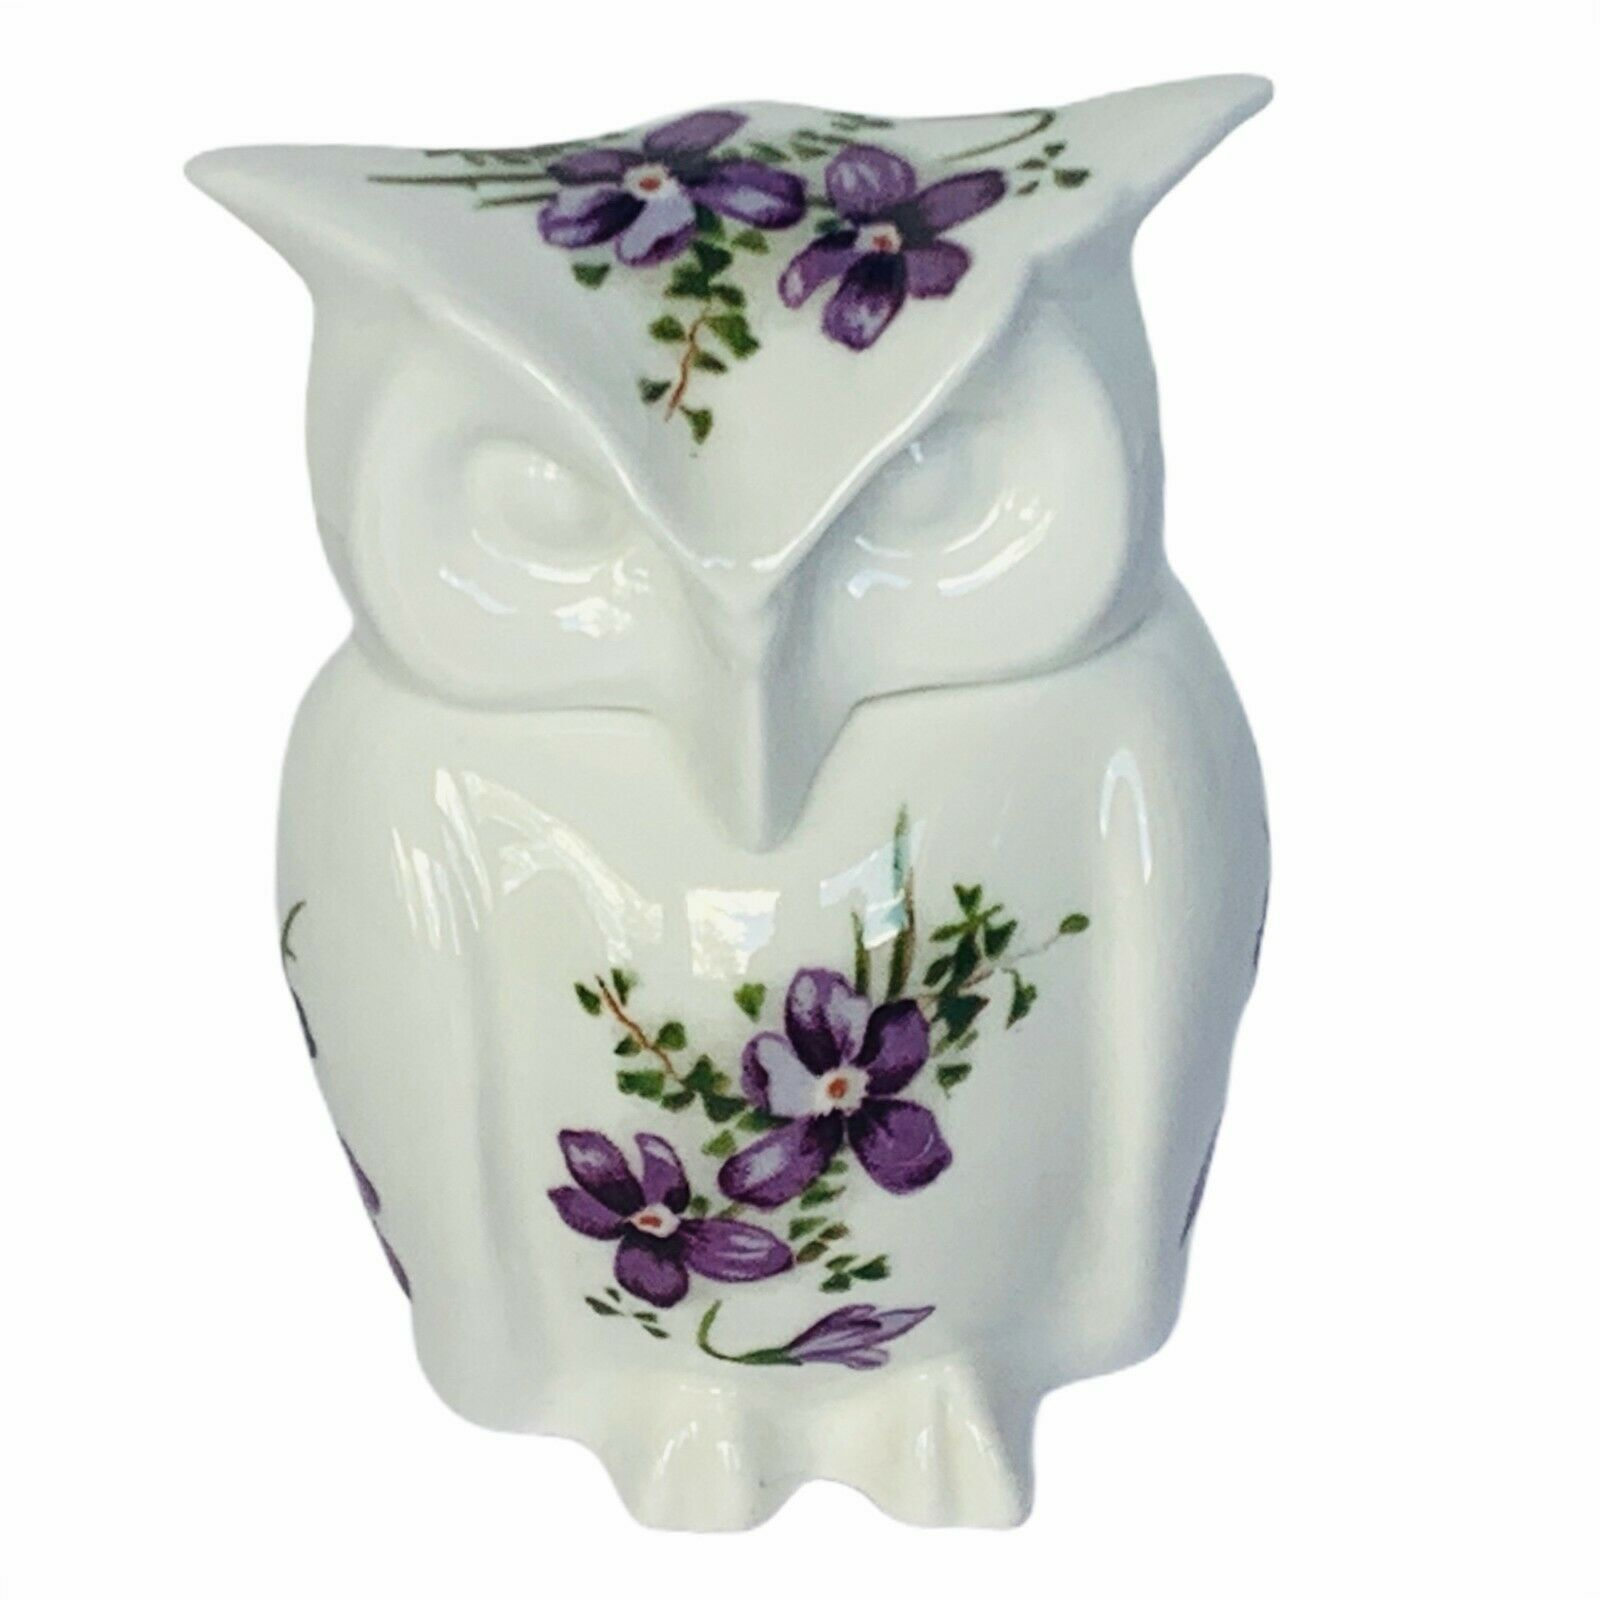 Primary image for Owl figurine vtg sculpture Hammersley England Victorian violets floral box lid